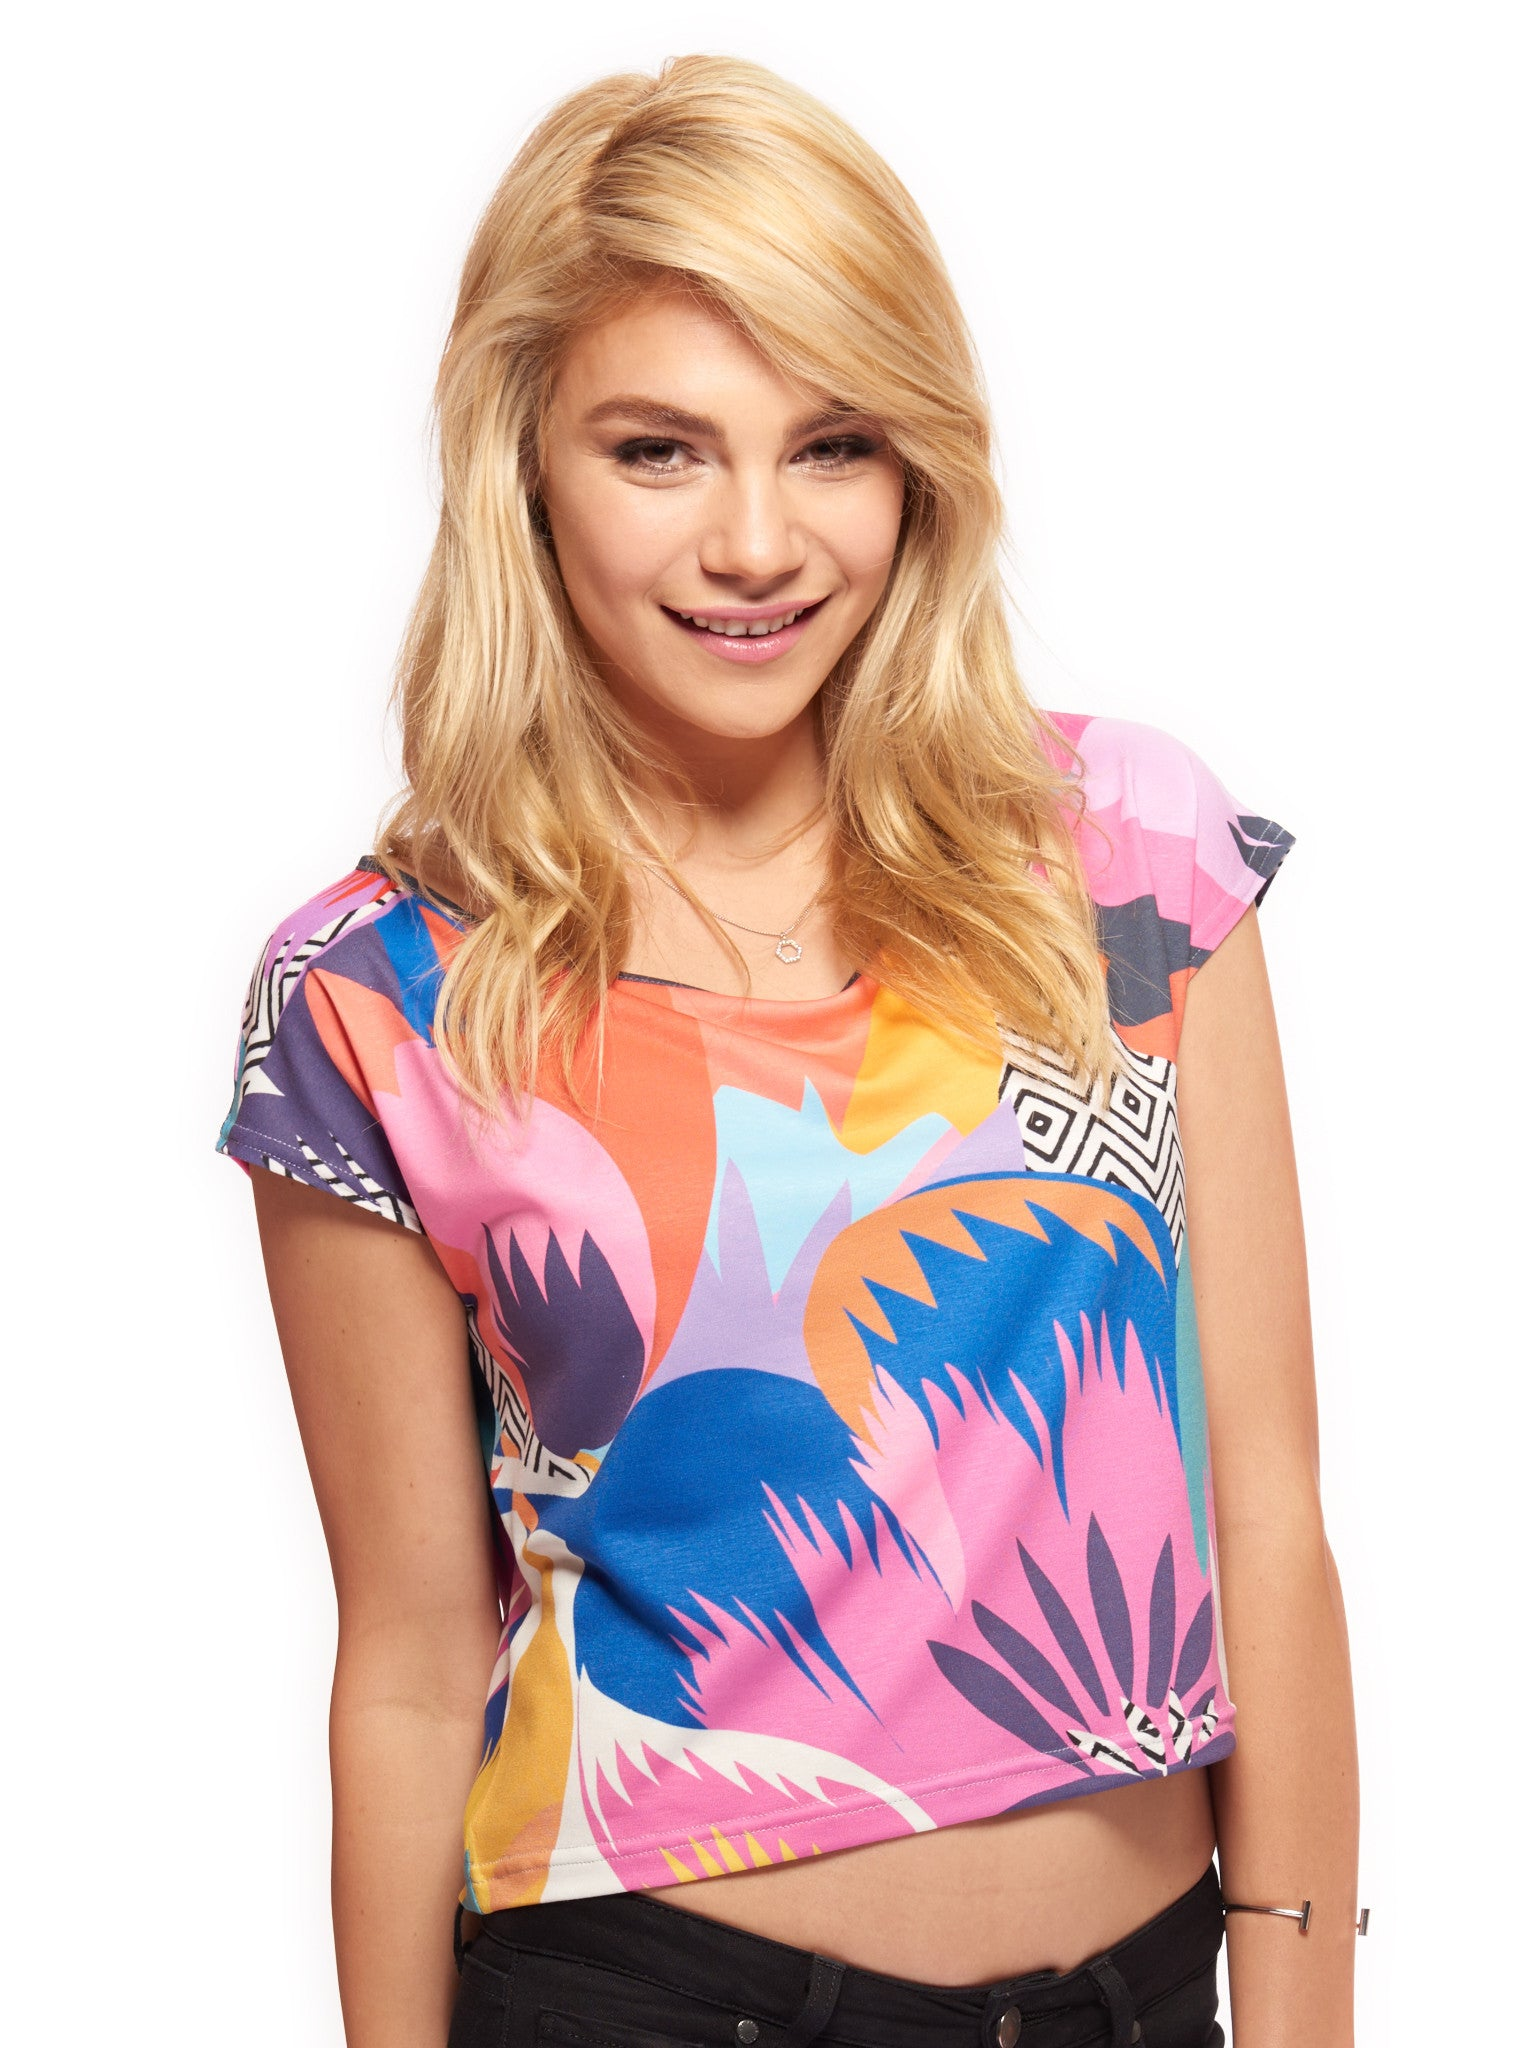 Among the Spring Flowers Women's Crop Top - Nuvango  - 1